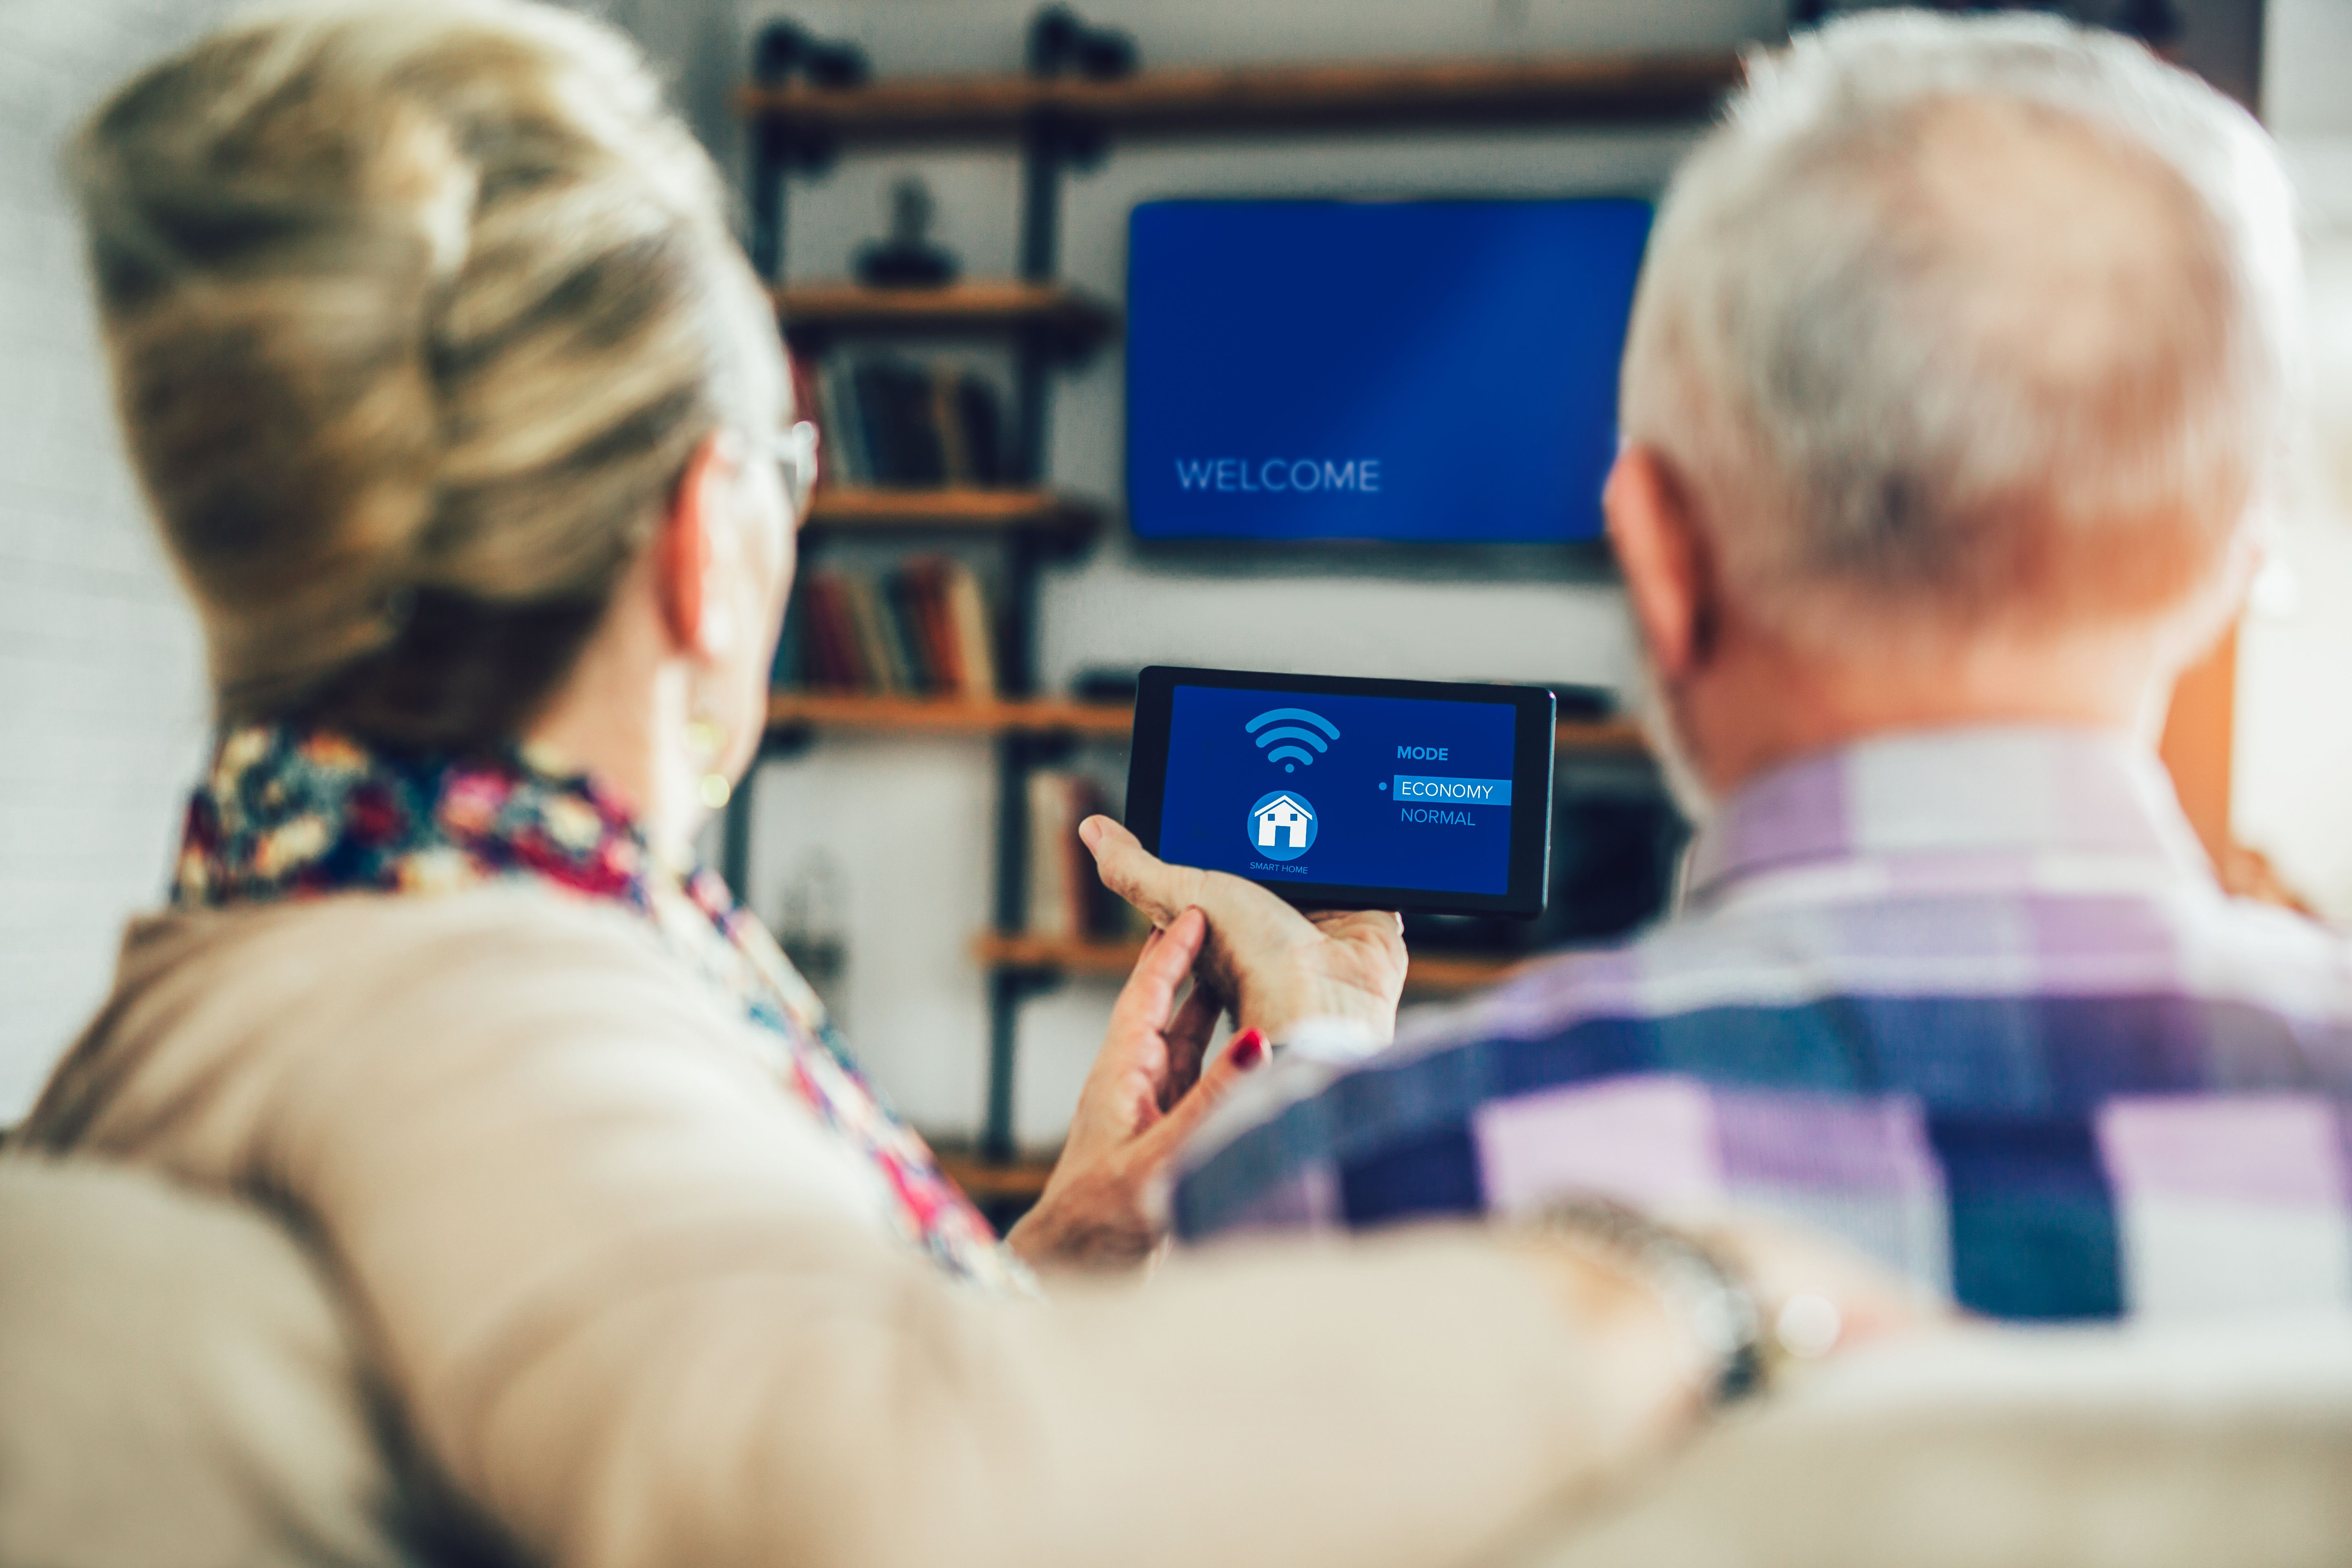 Smart Devices For Your Home Buying Guide Smart Home Smart Device Smart